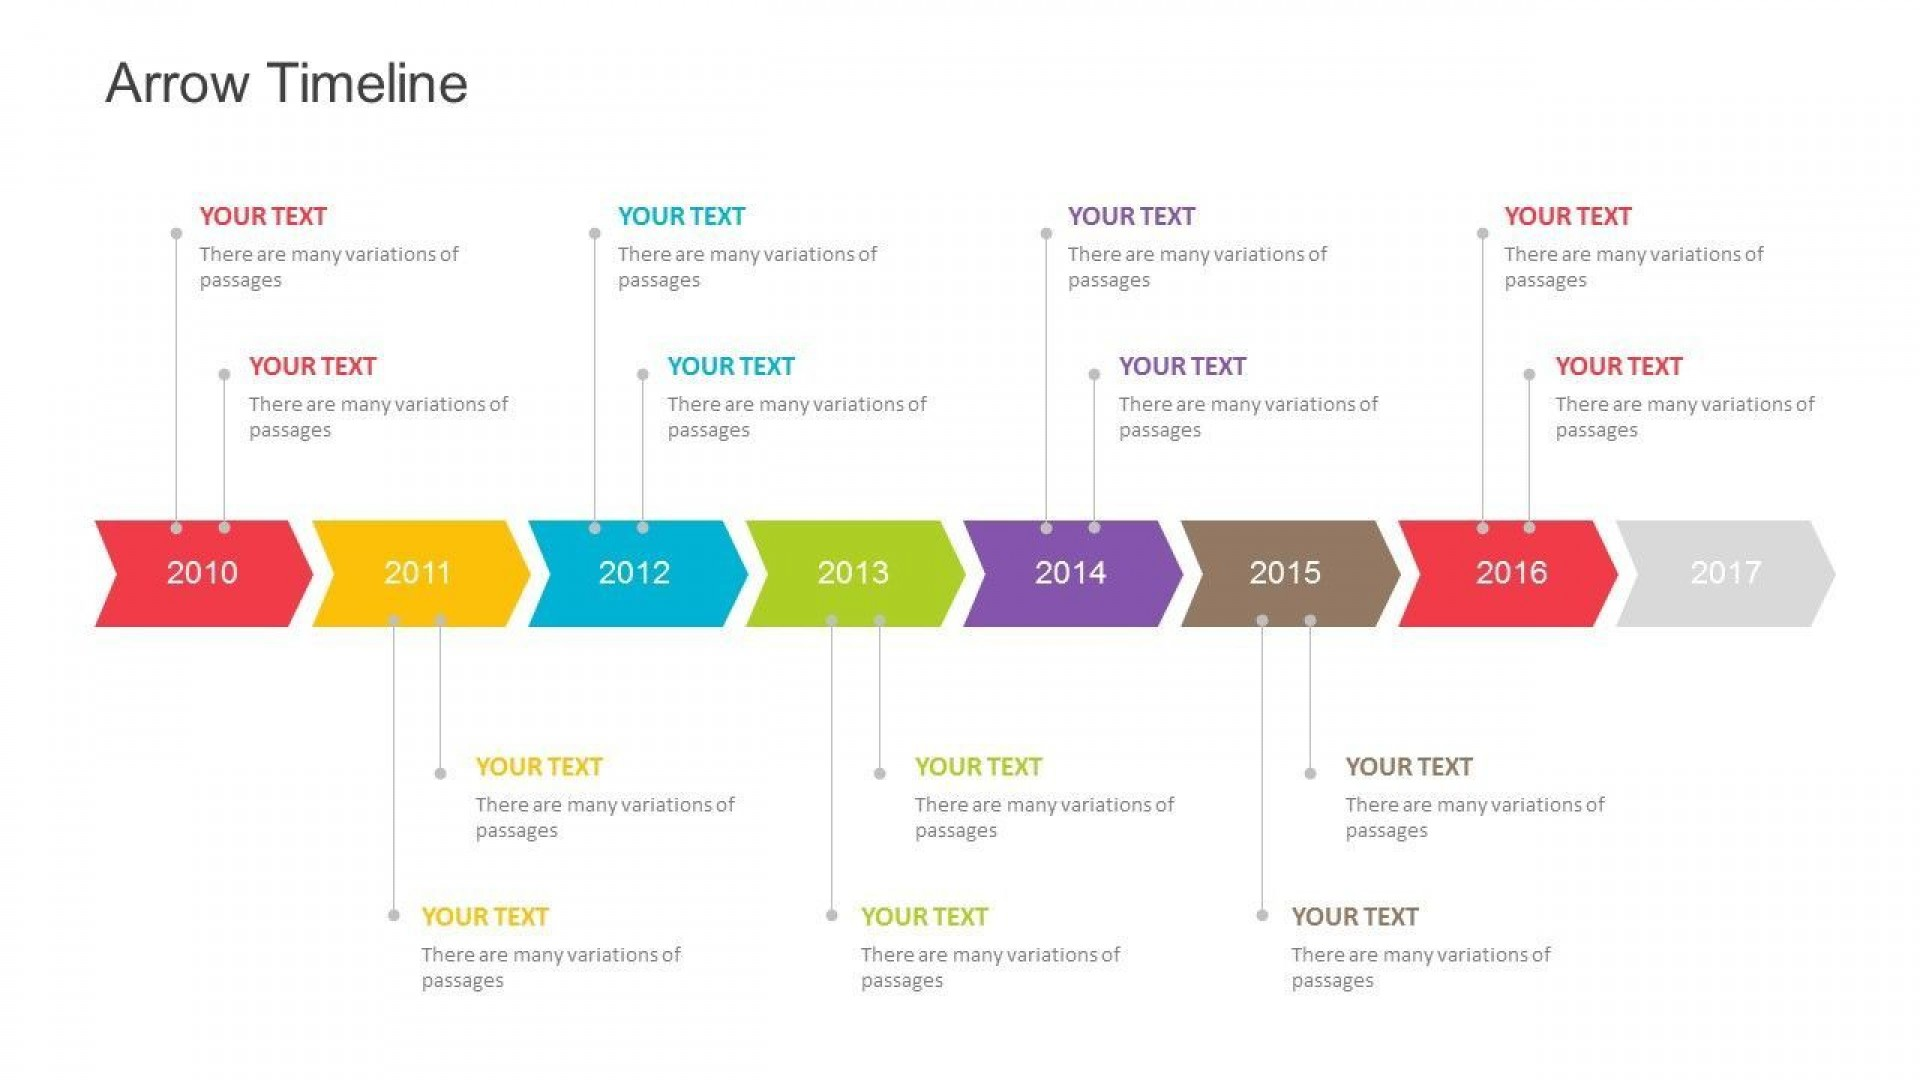 003 Stupendou Timeline Sample For Ppt High Resolution  Powerpoint Template 2010 Example1920